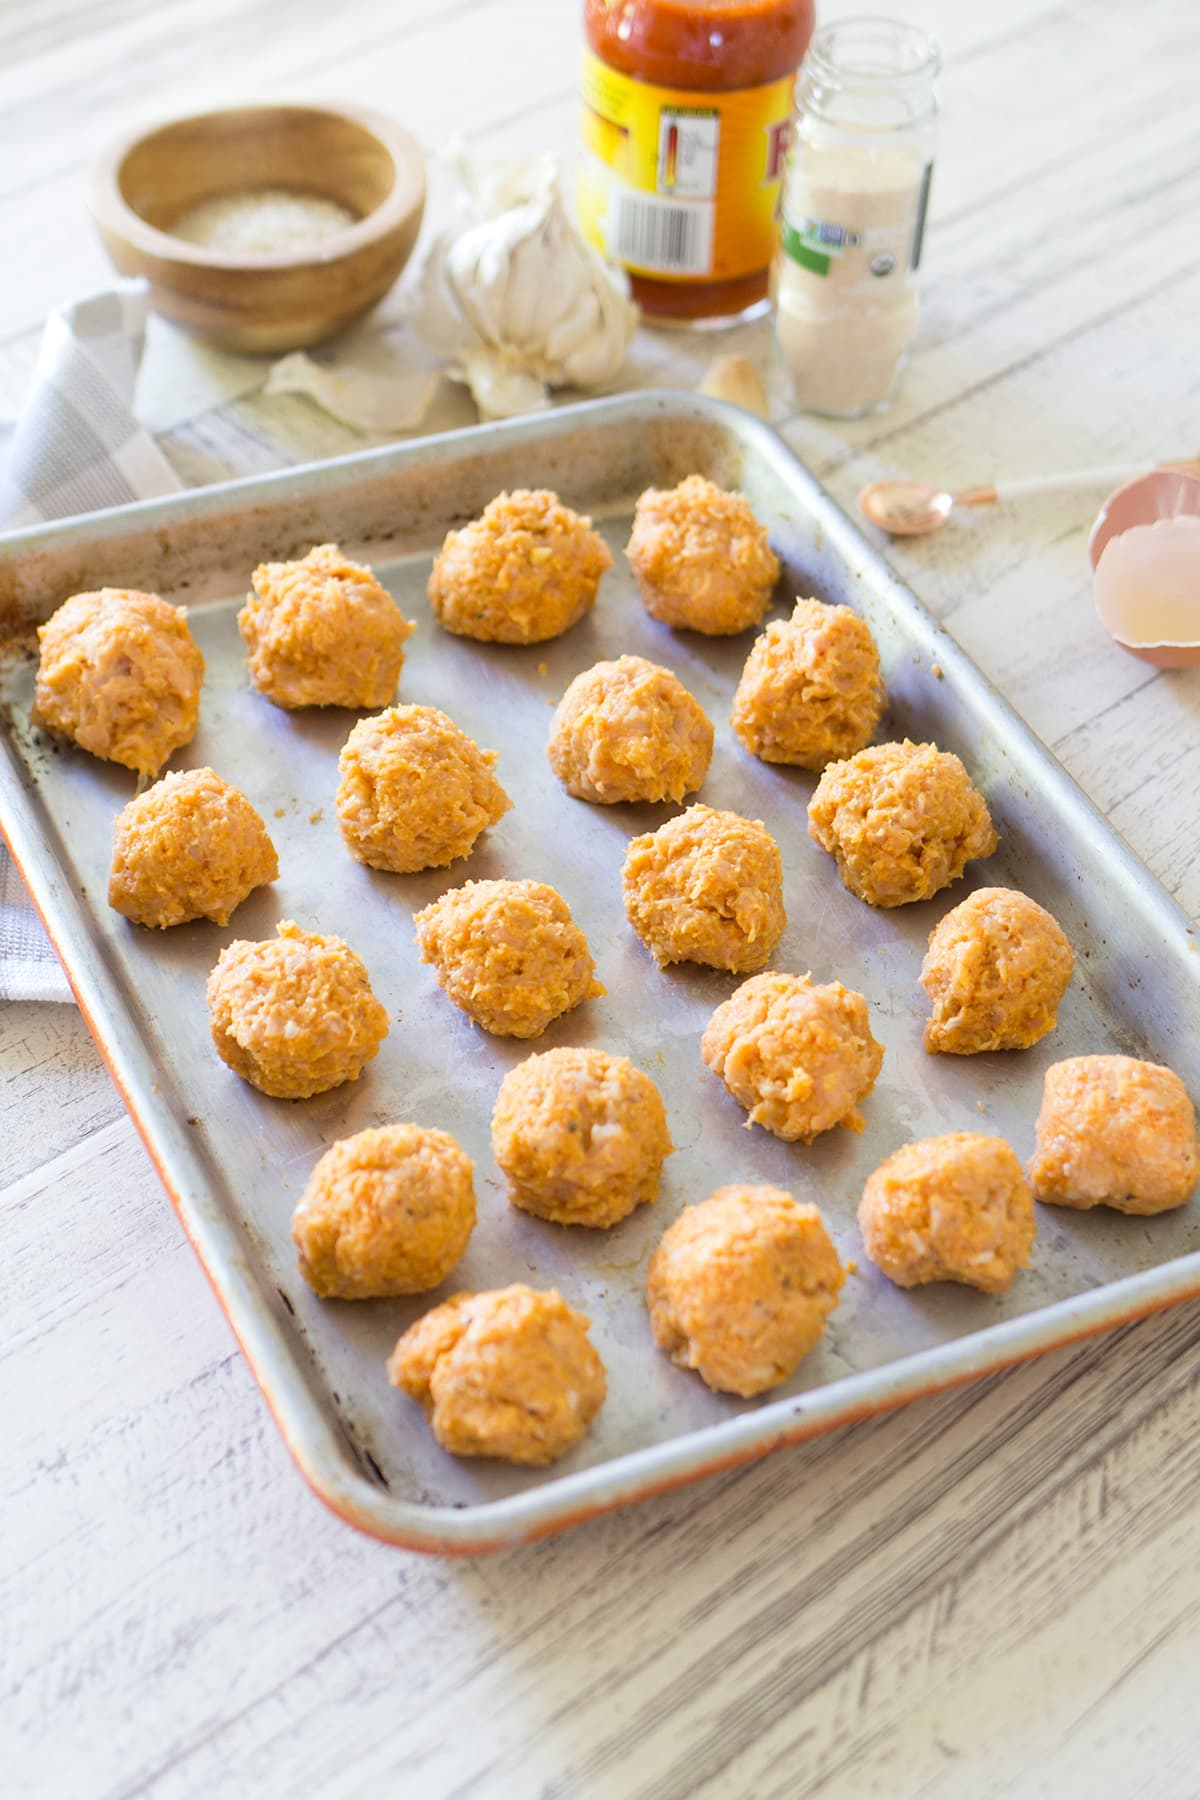 Game Day Buffalo Chicken Meatballs with Blue Cheese